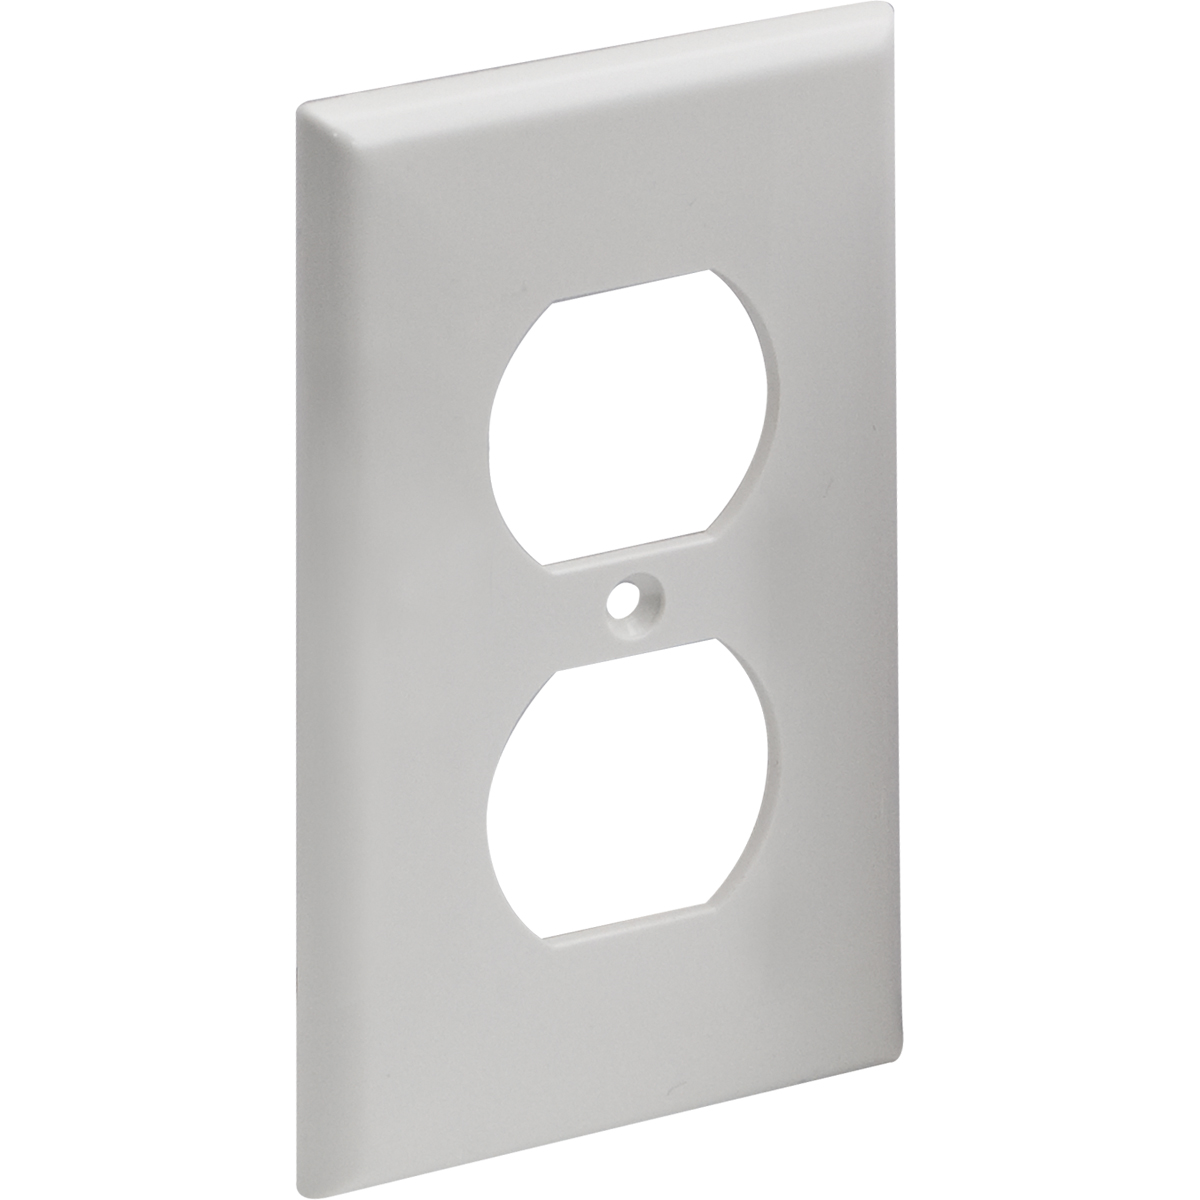 Single Gang Duplex Receptacle Wall Plate - Standard   Contractor Access